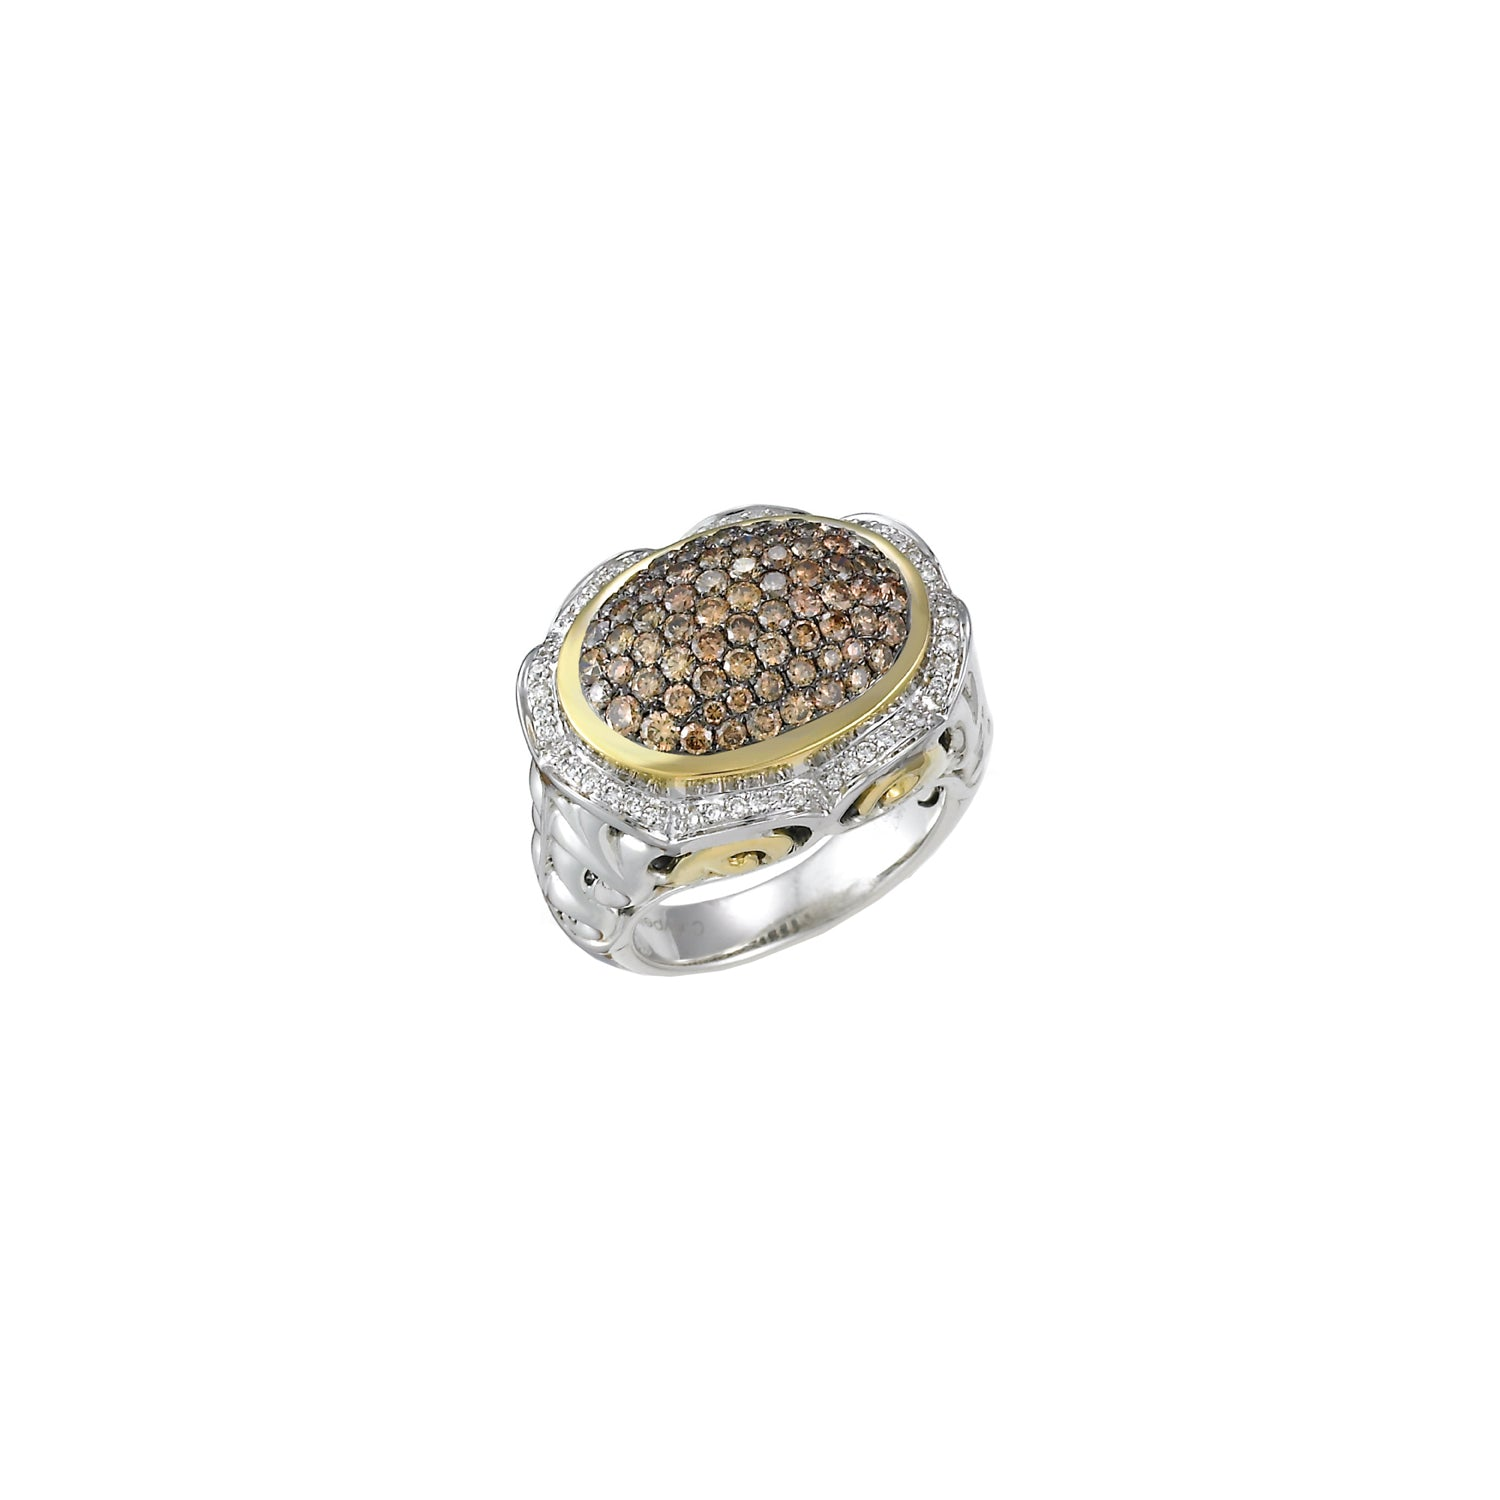 Charles Krypell Oval Ring with Brown and White Diamonds